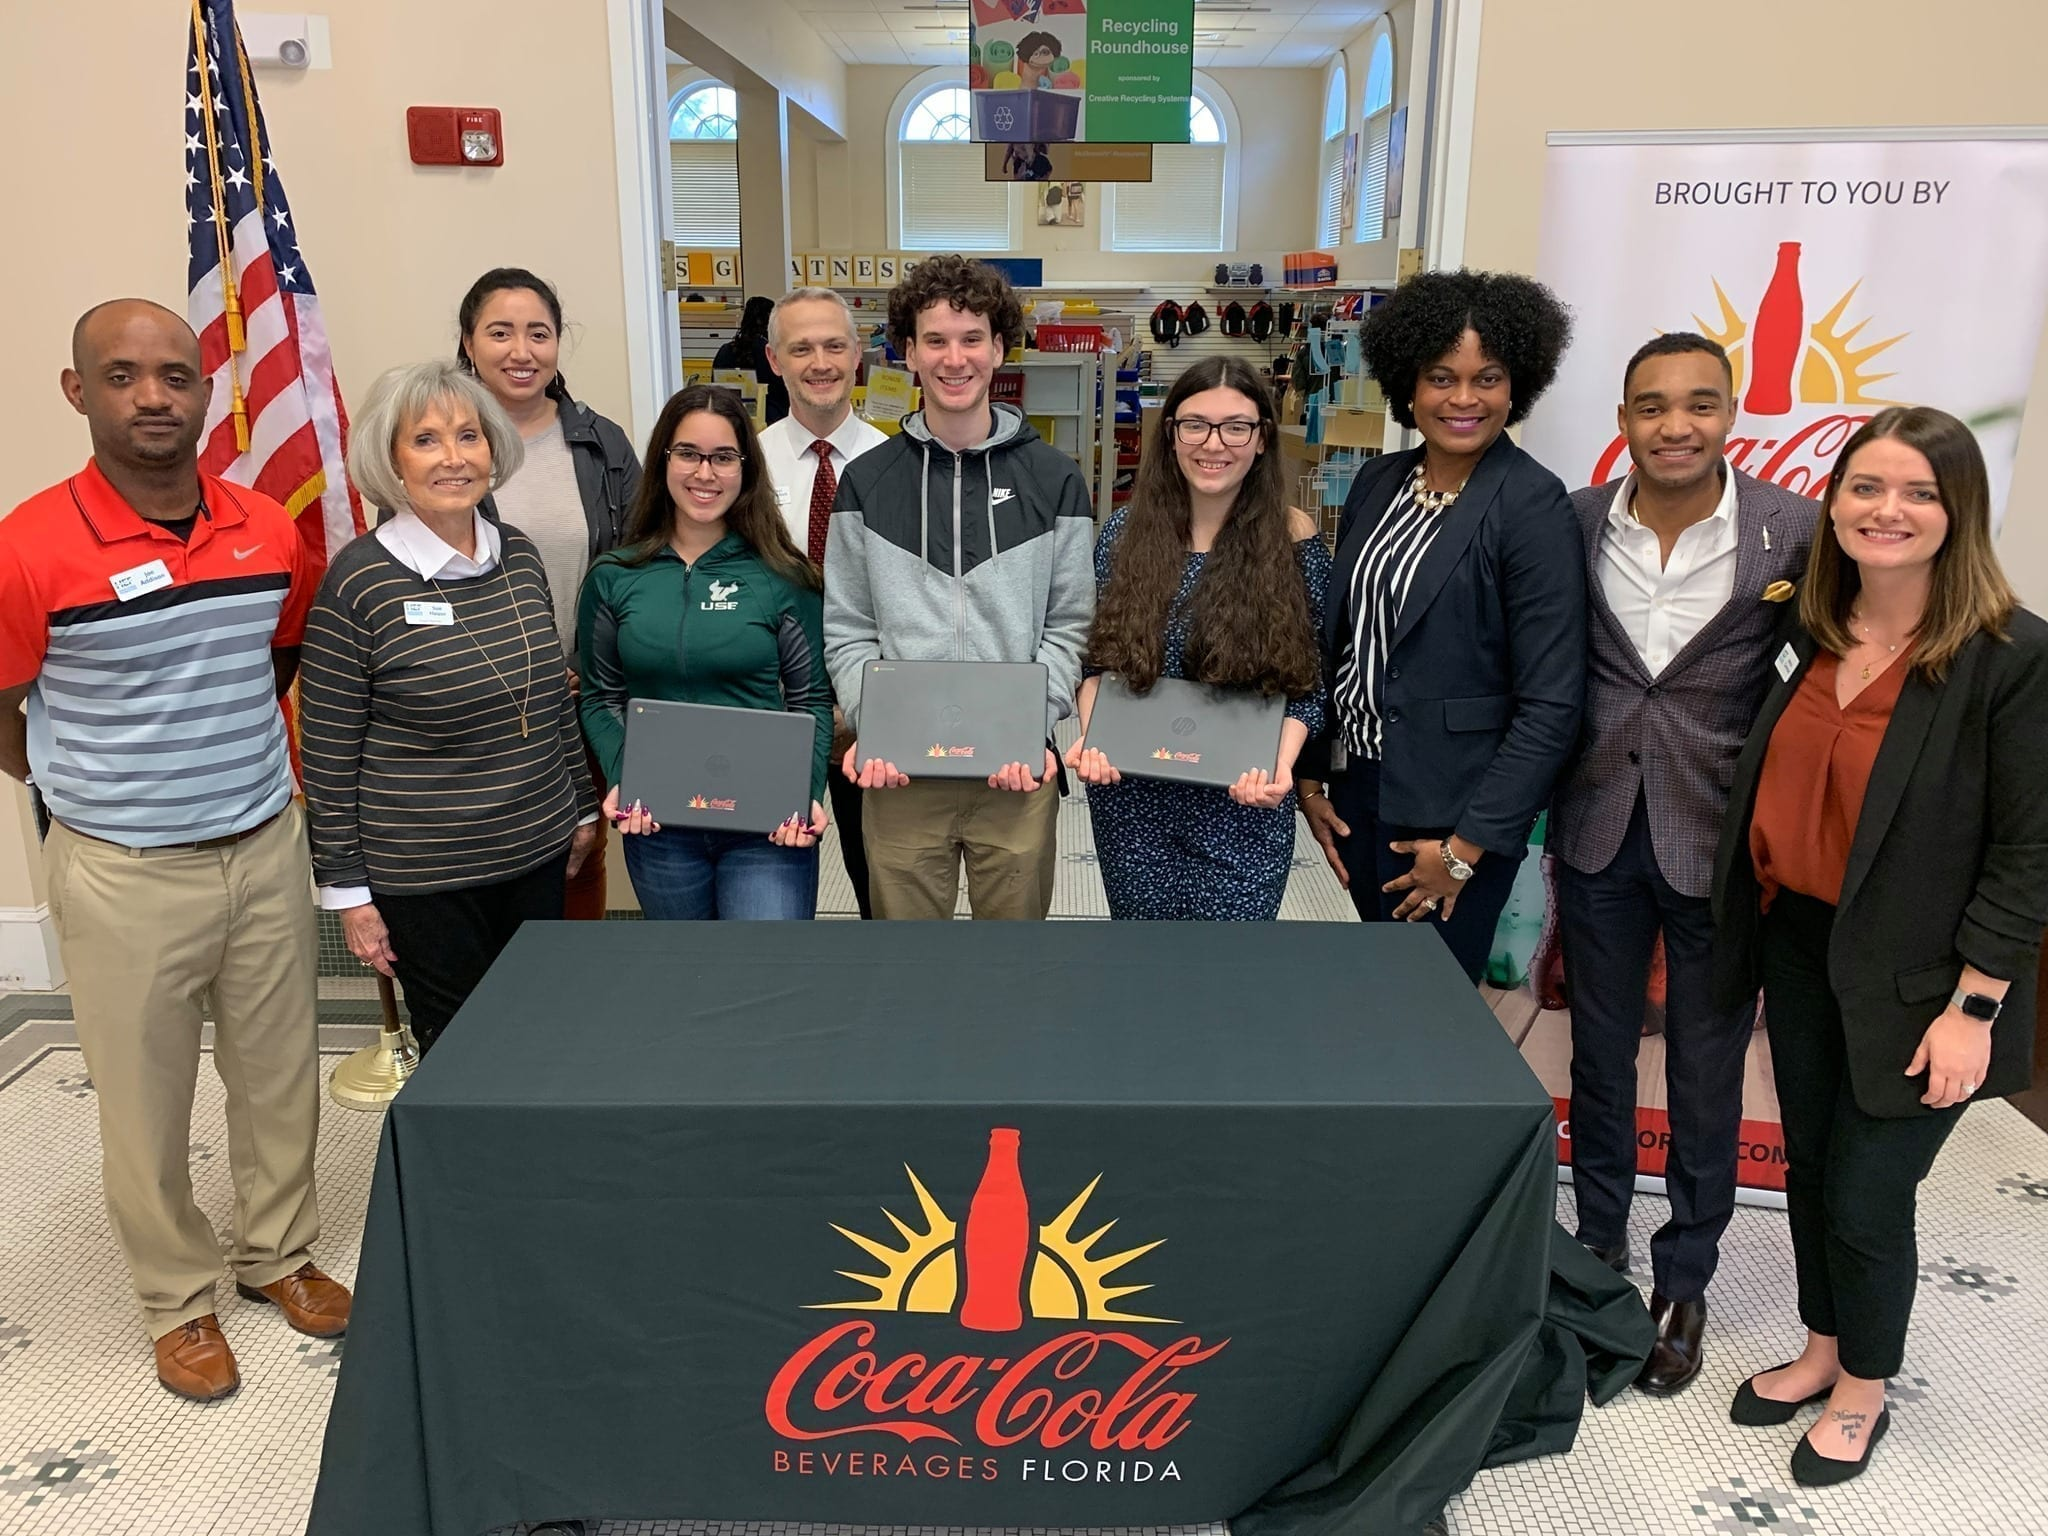 Representatives from Coke Florida present laptops to three Take Stock in Children mentoring students and Hillsborough Education Foundation Take Stock in Children team